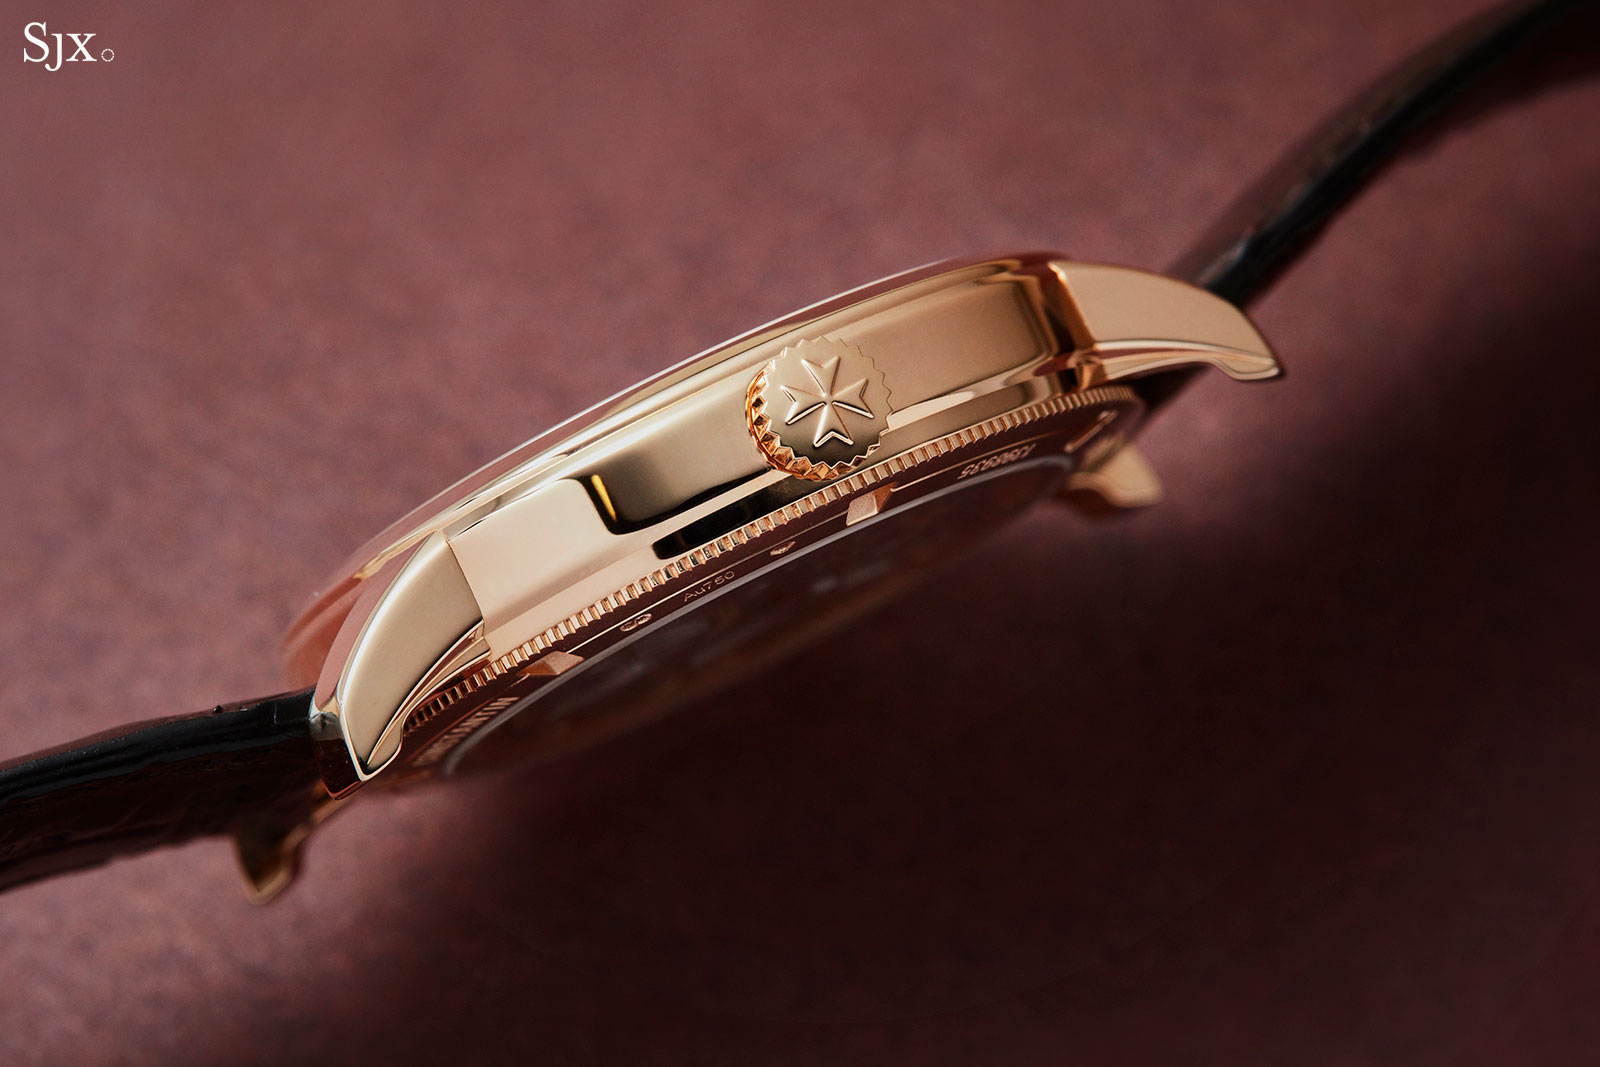 Vacheron Constantin Traditionnelle tourbillon automatic 5